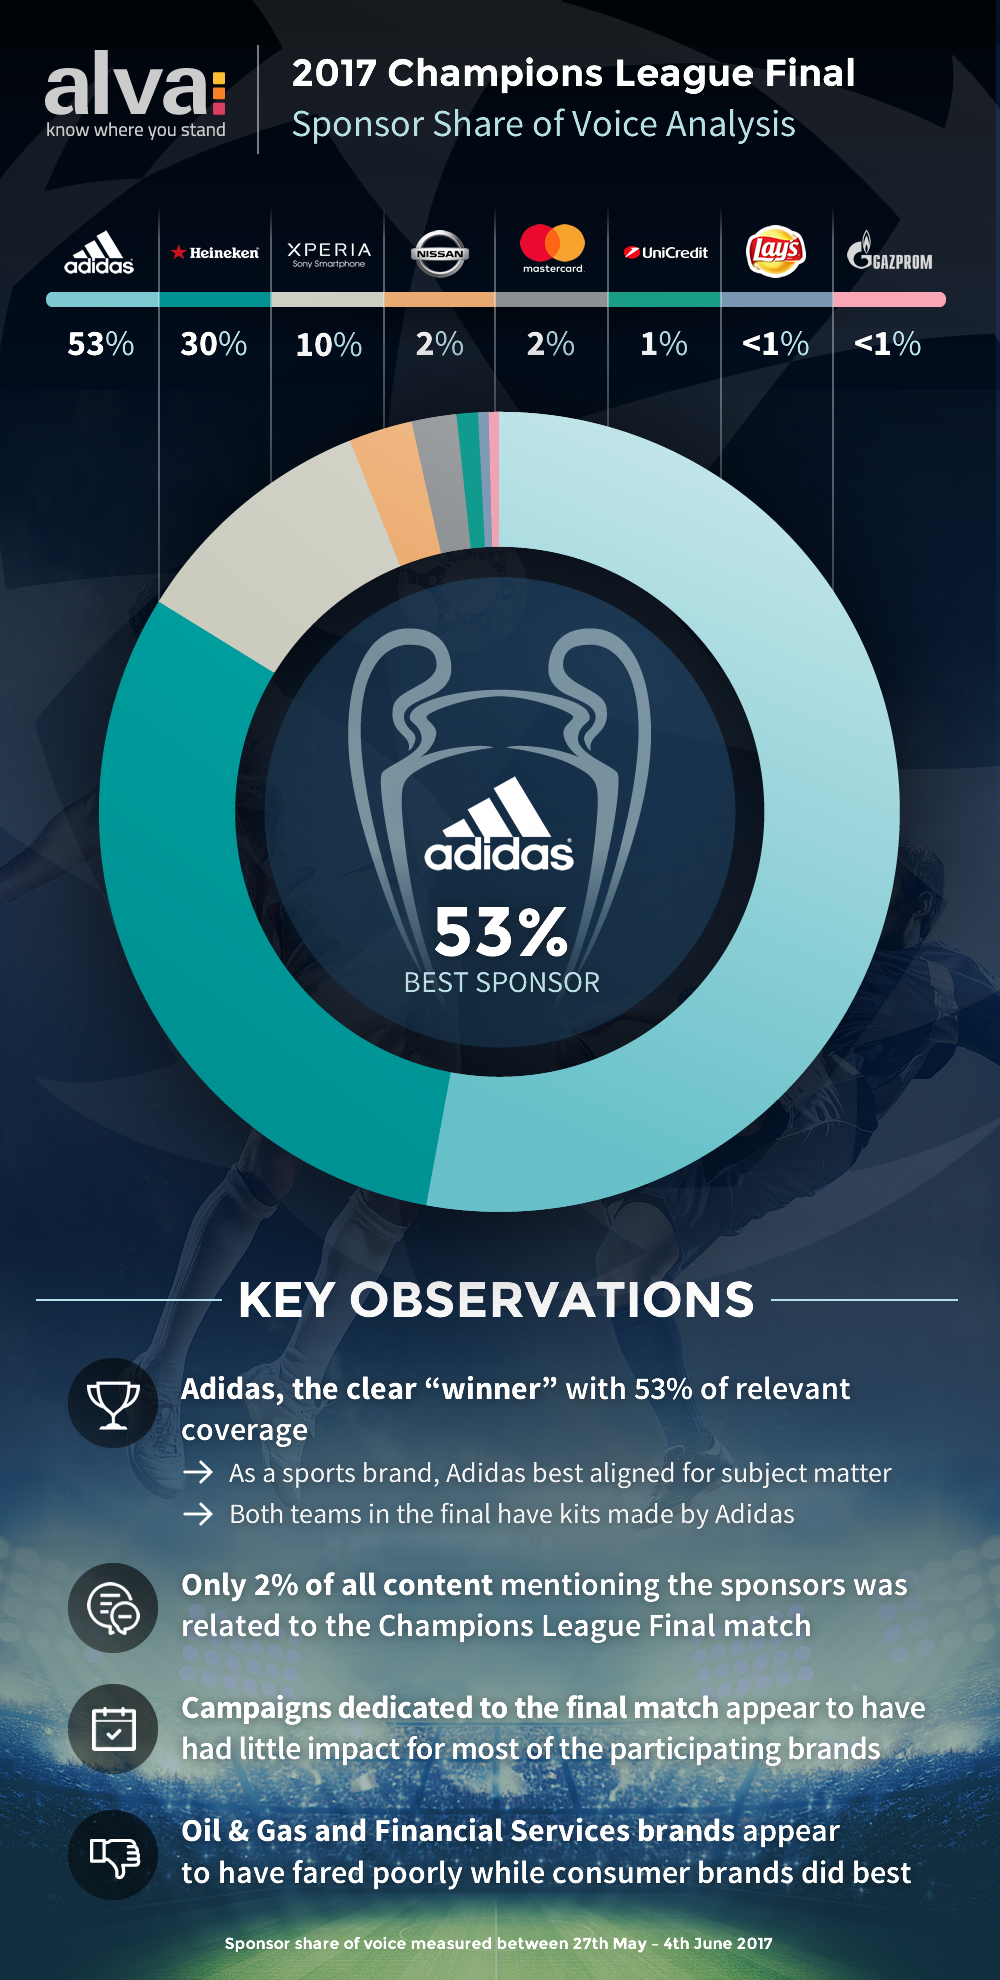 Champions League Final Sponsors Share of Voice